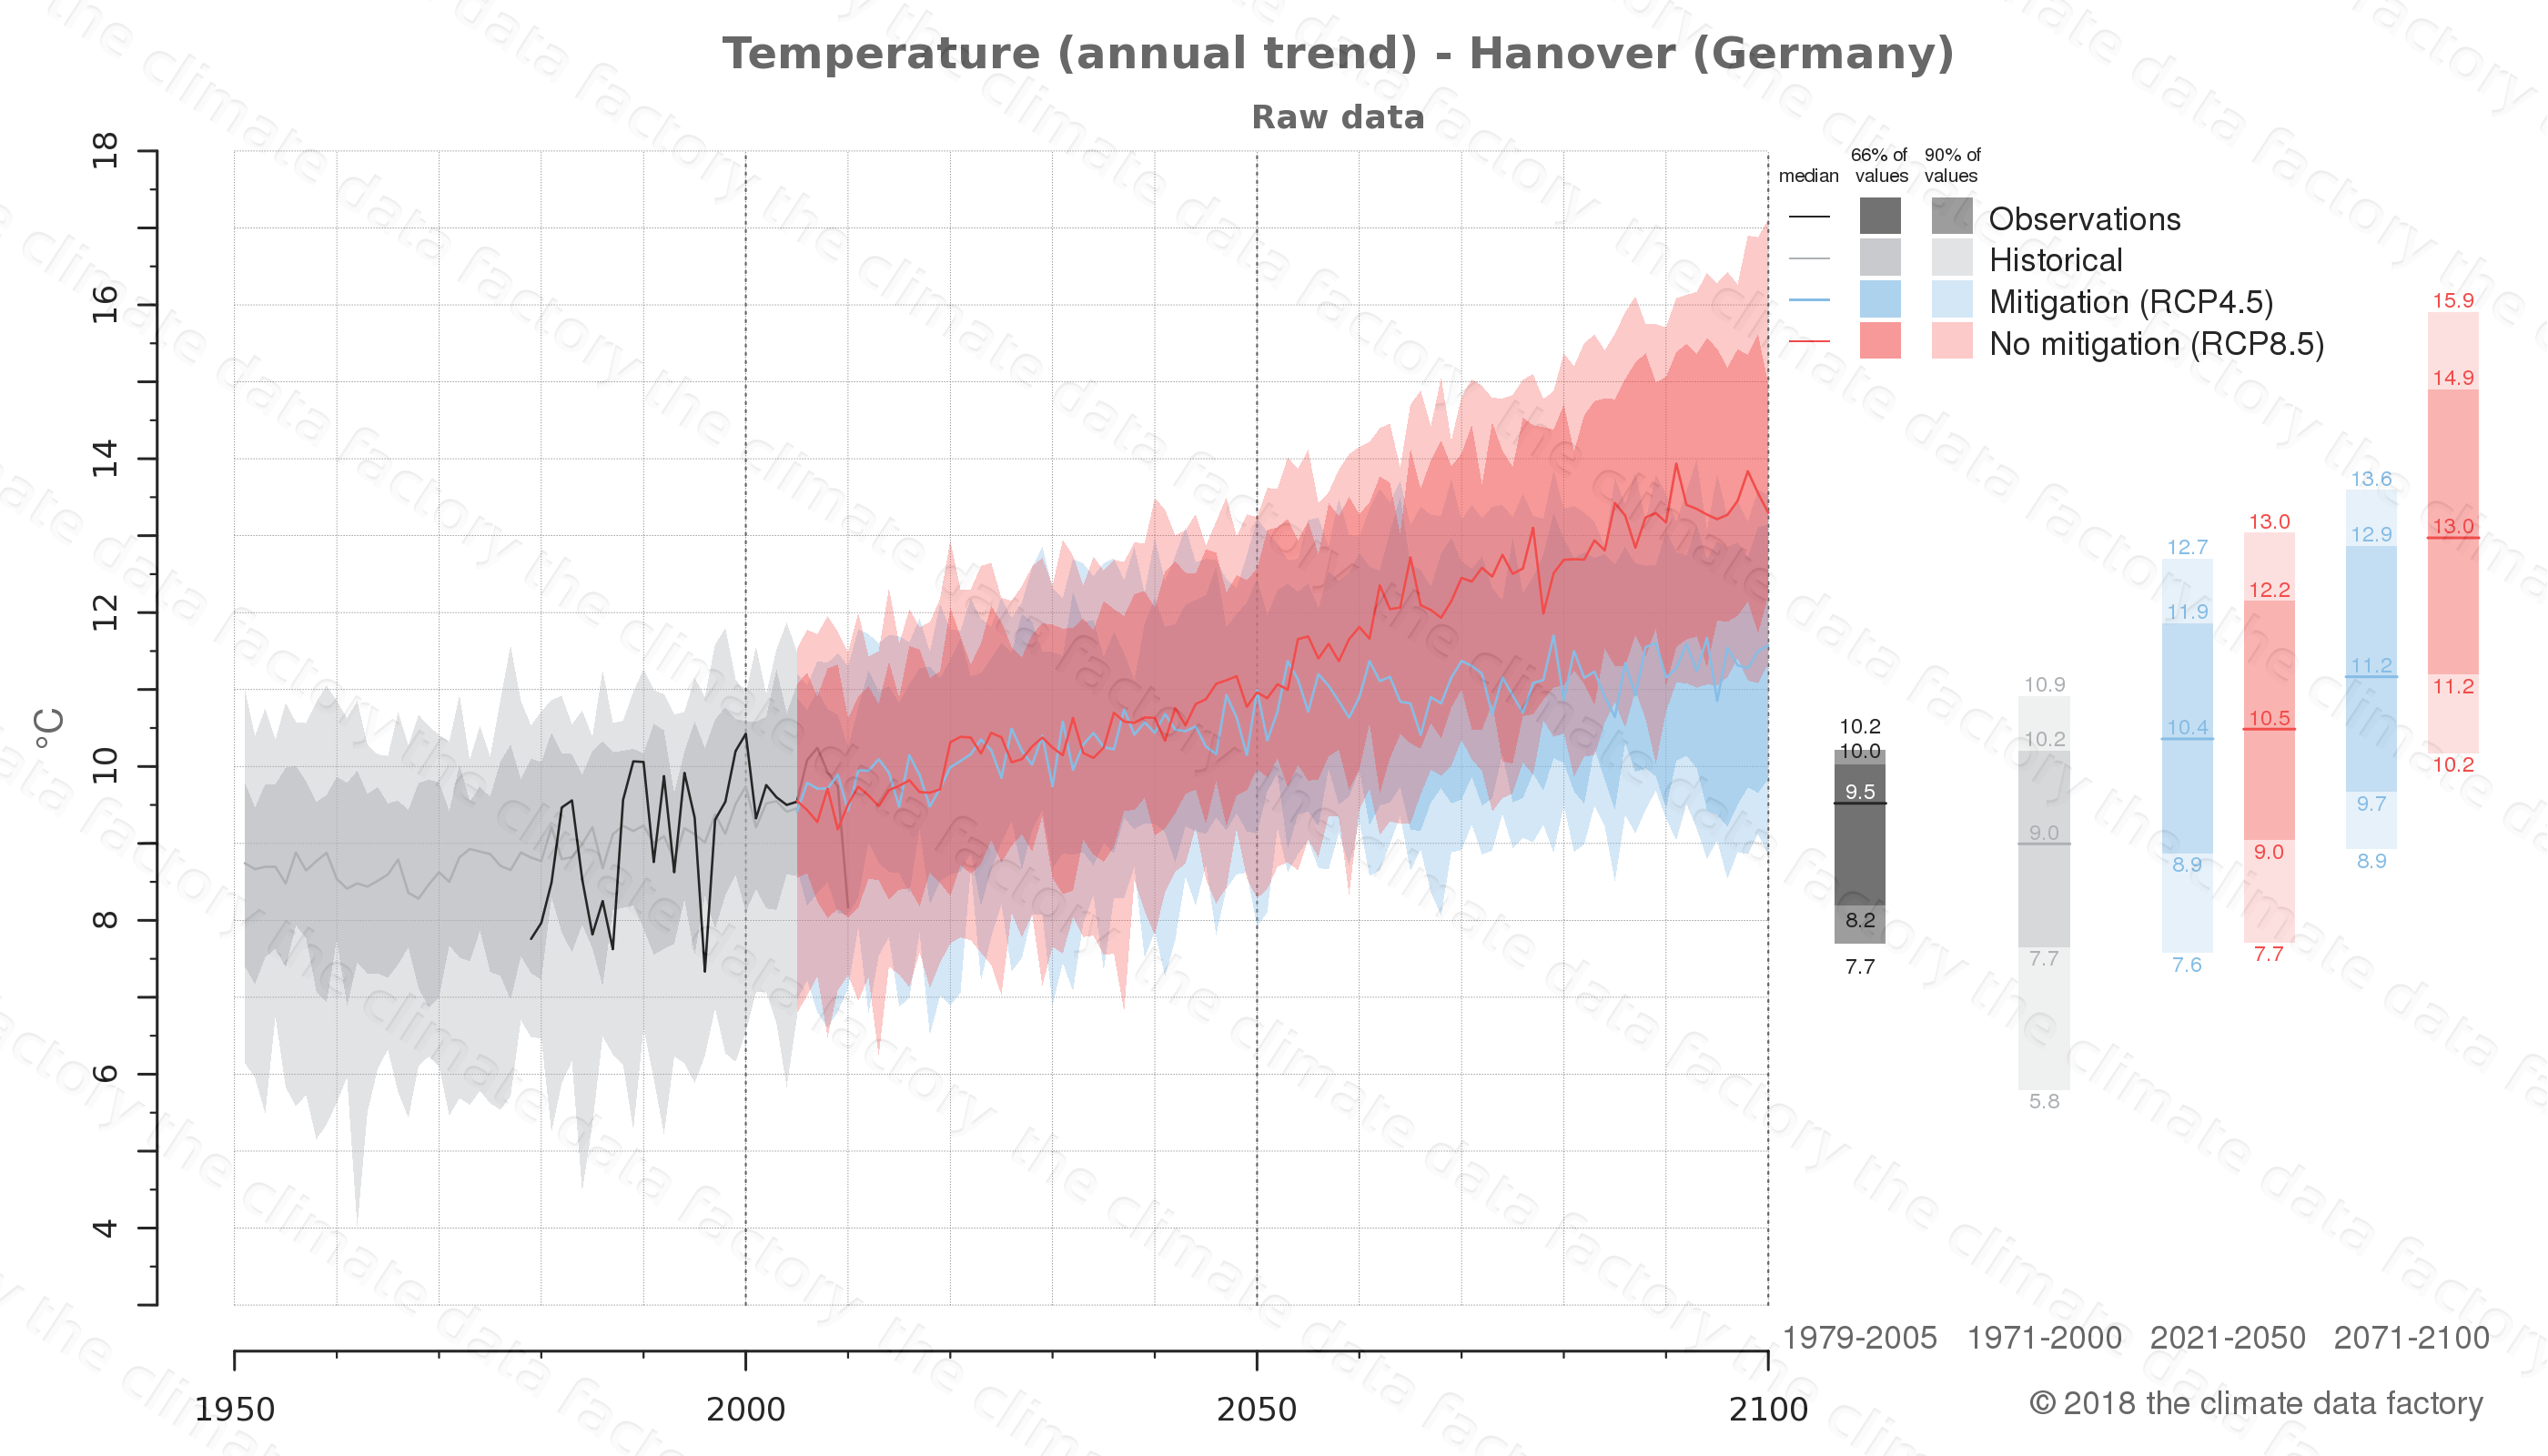 climate change data policy adaptation climate graph city data temperature hanover germany